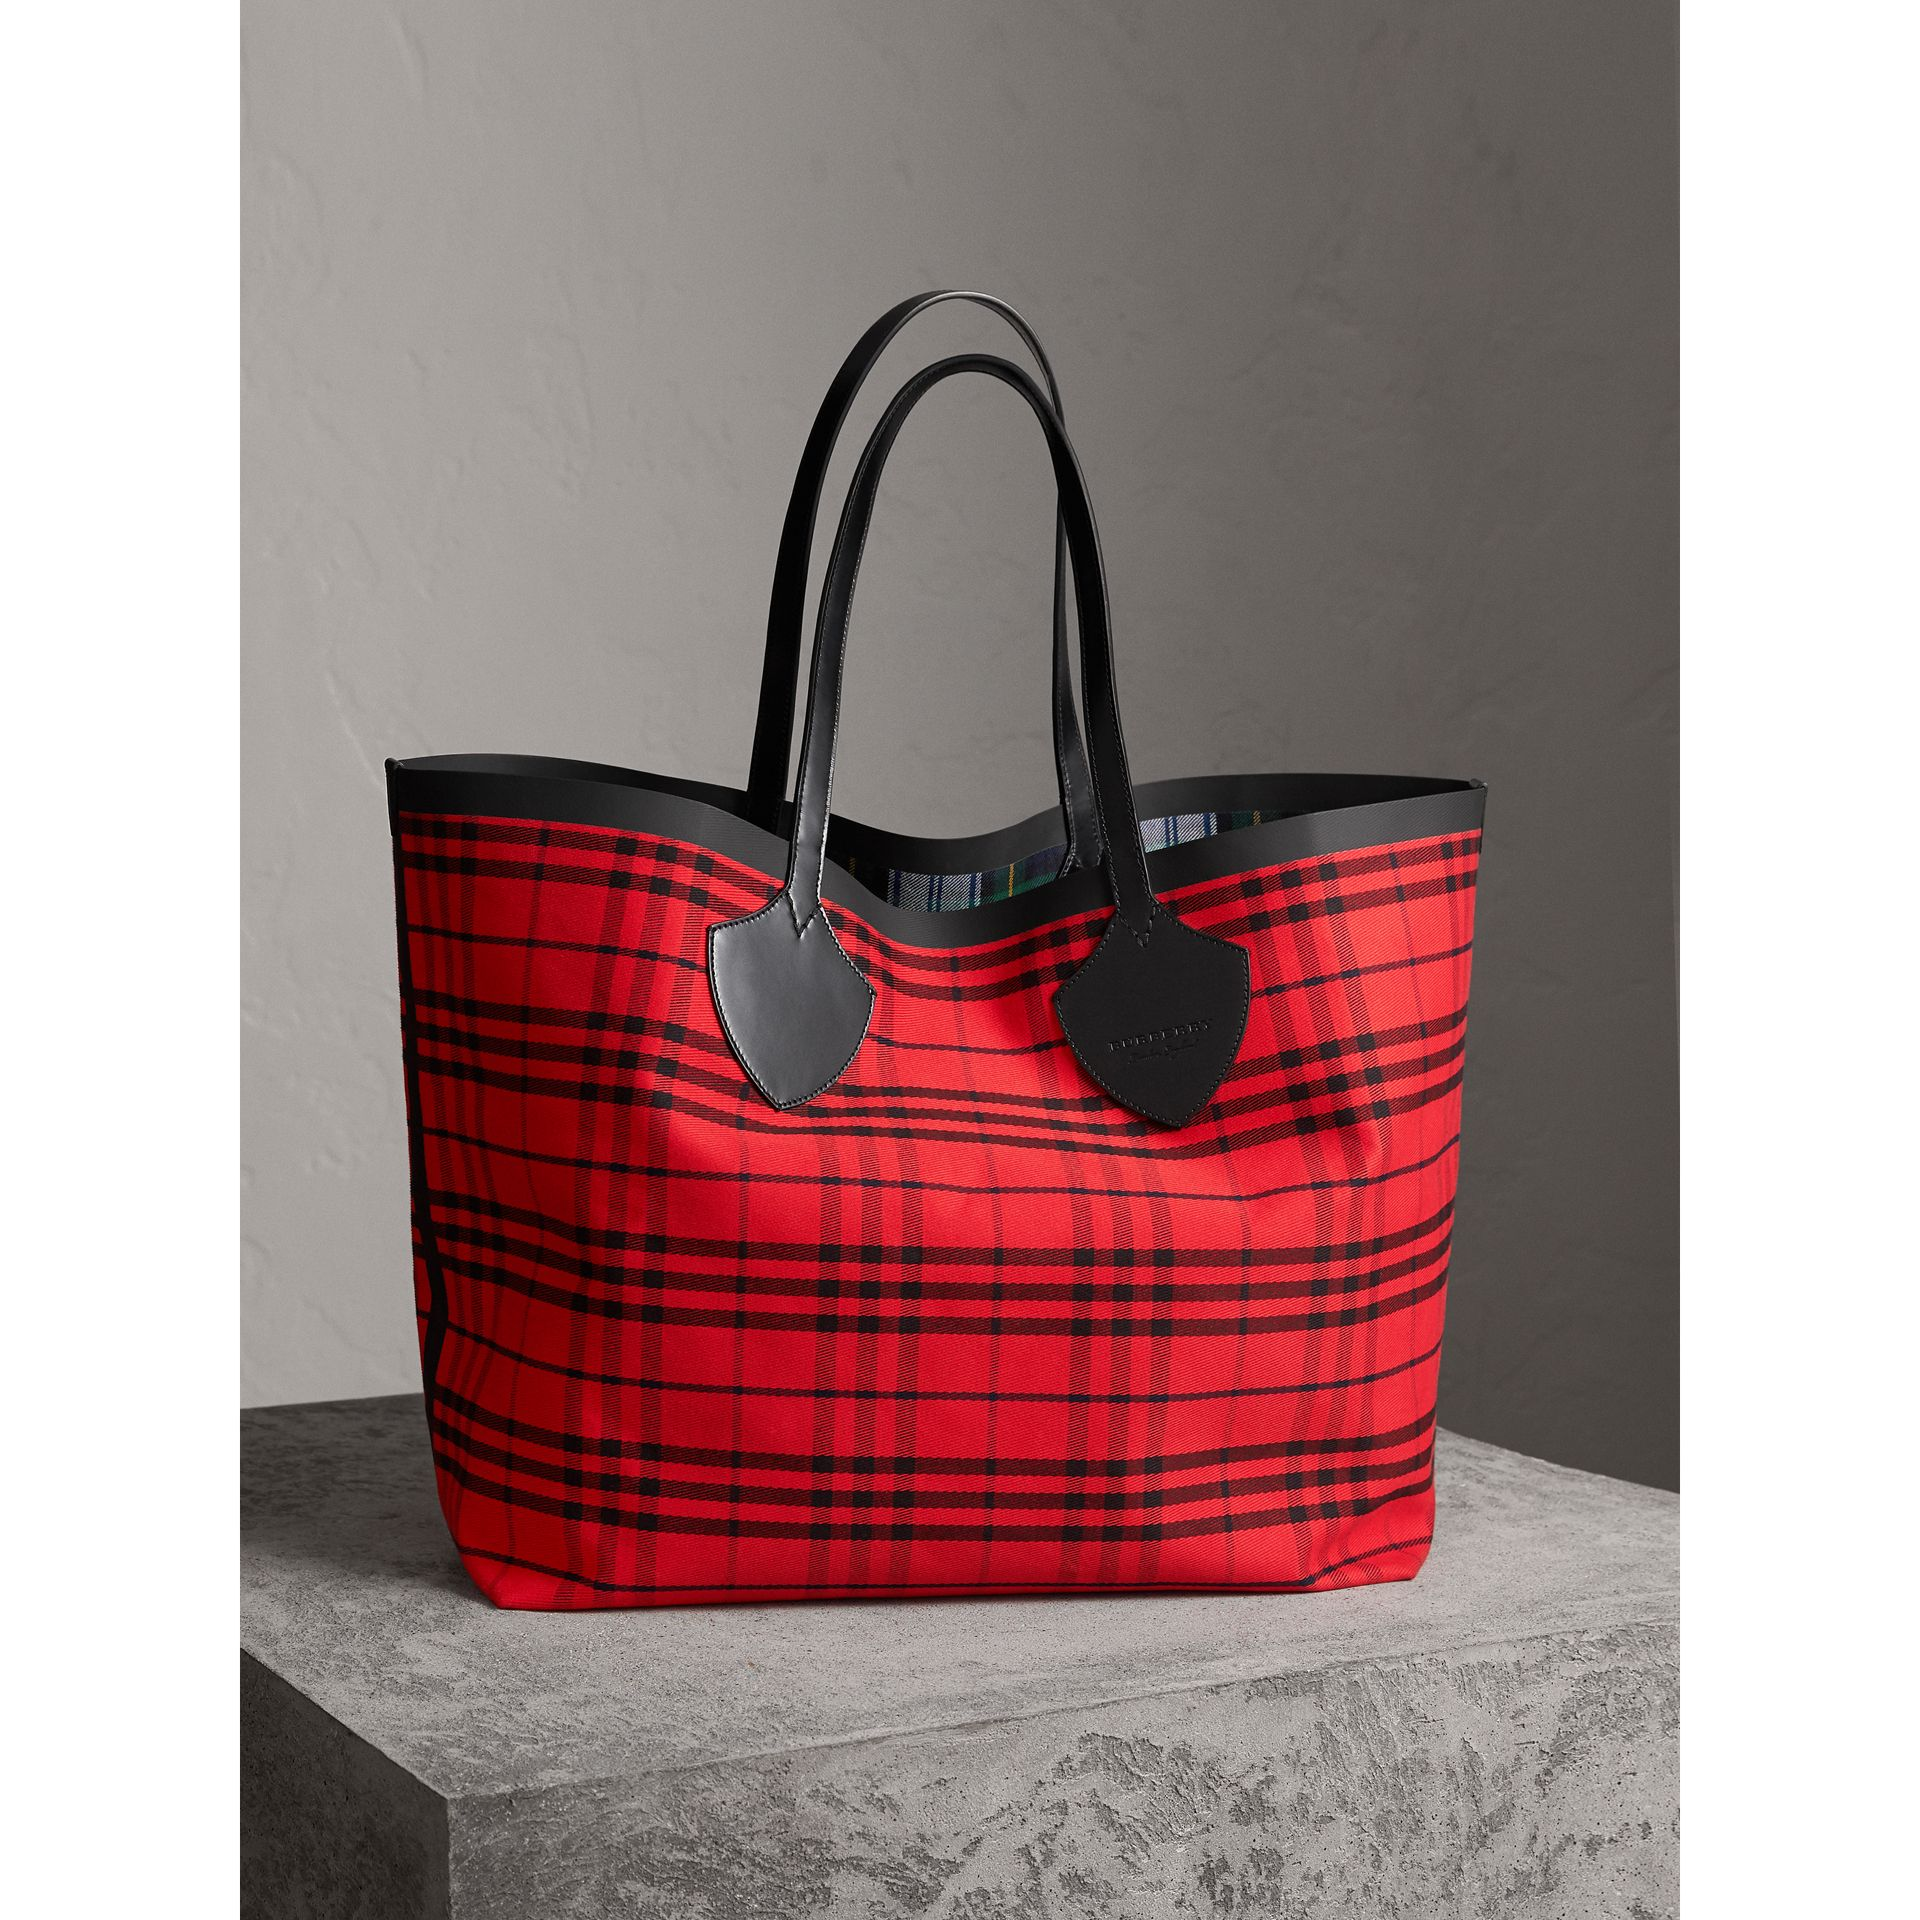 Sac tote The Giant réversible en coton tartan (Bleu Encre/rouge Militaire) | Burberry - photo de la galerie 5